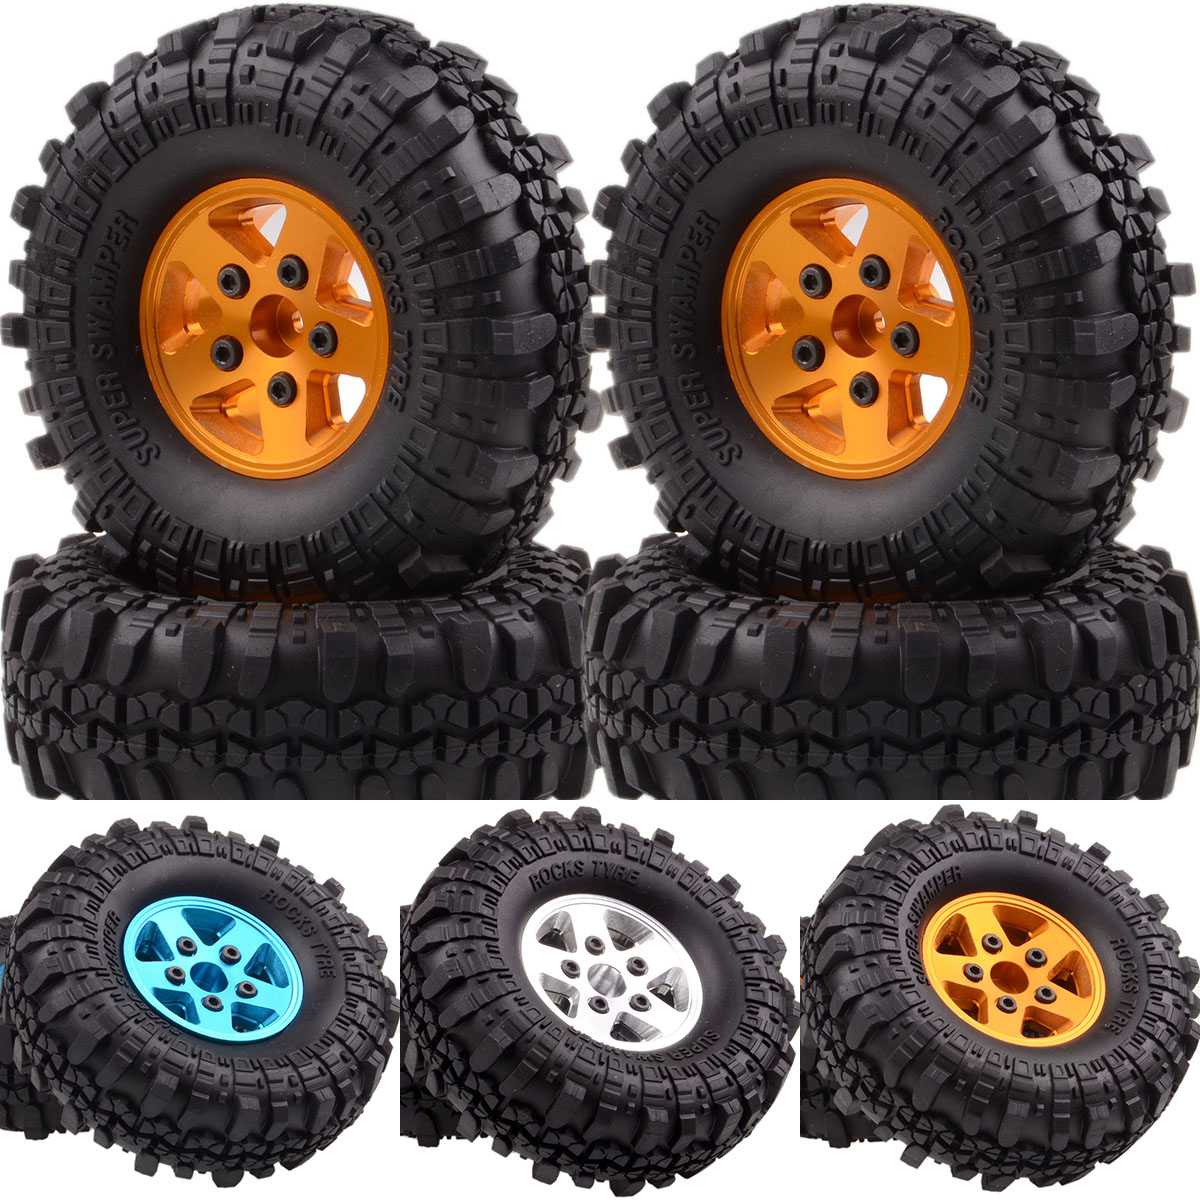 109-7035 4PCS Metal Rock Crawler Wheel Rim 1.9 & Tyre 110MM For RC 1/10 Axial Tamiya HSP 1:10 Rims Tires free shipping 4pcs lot 1 9 inch wheels tire tyre for rc car model crawler tamiya cc01 f350 rc 4wd axial scx10t etc